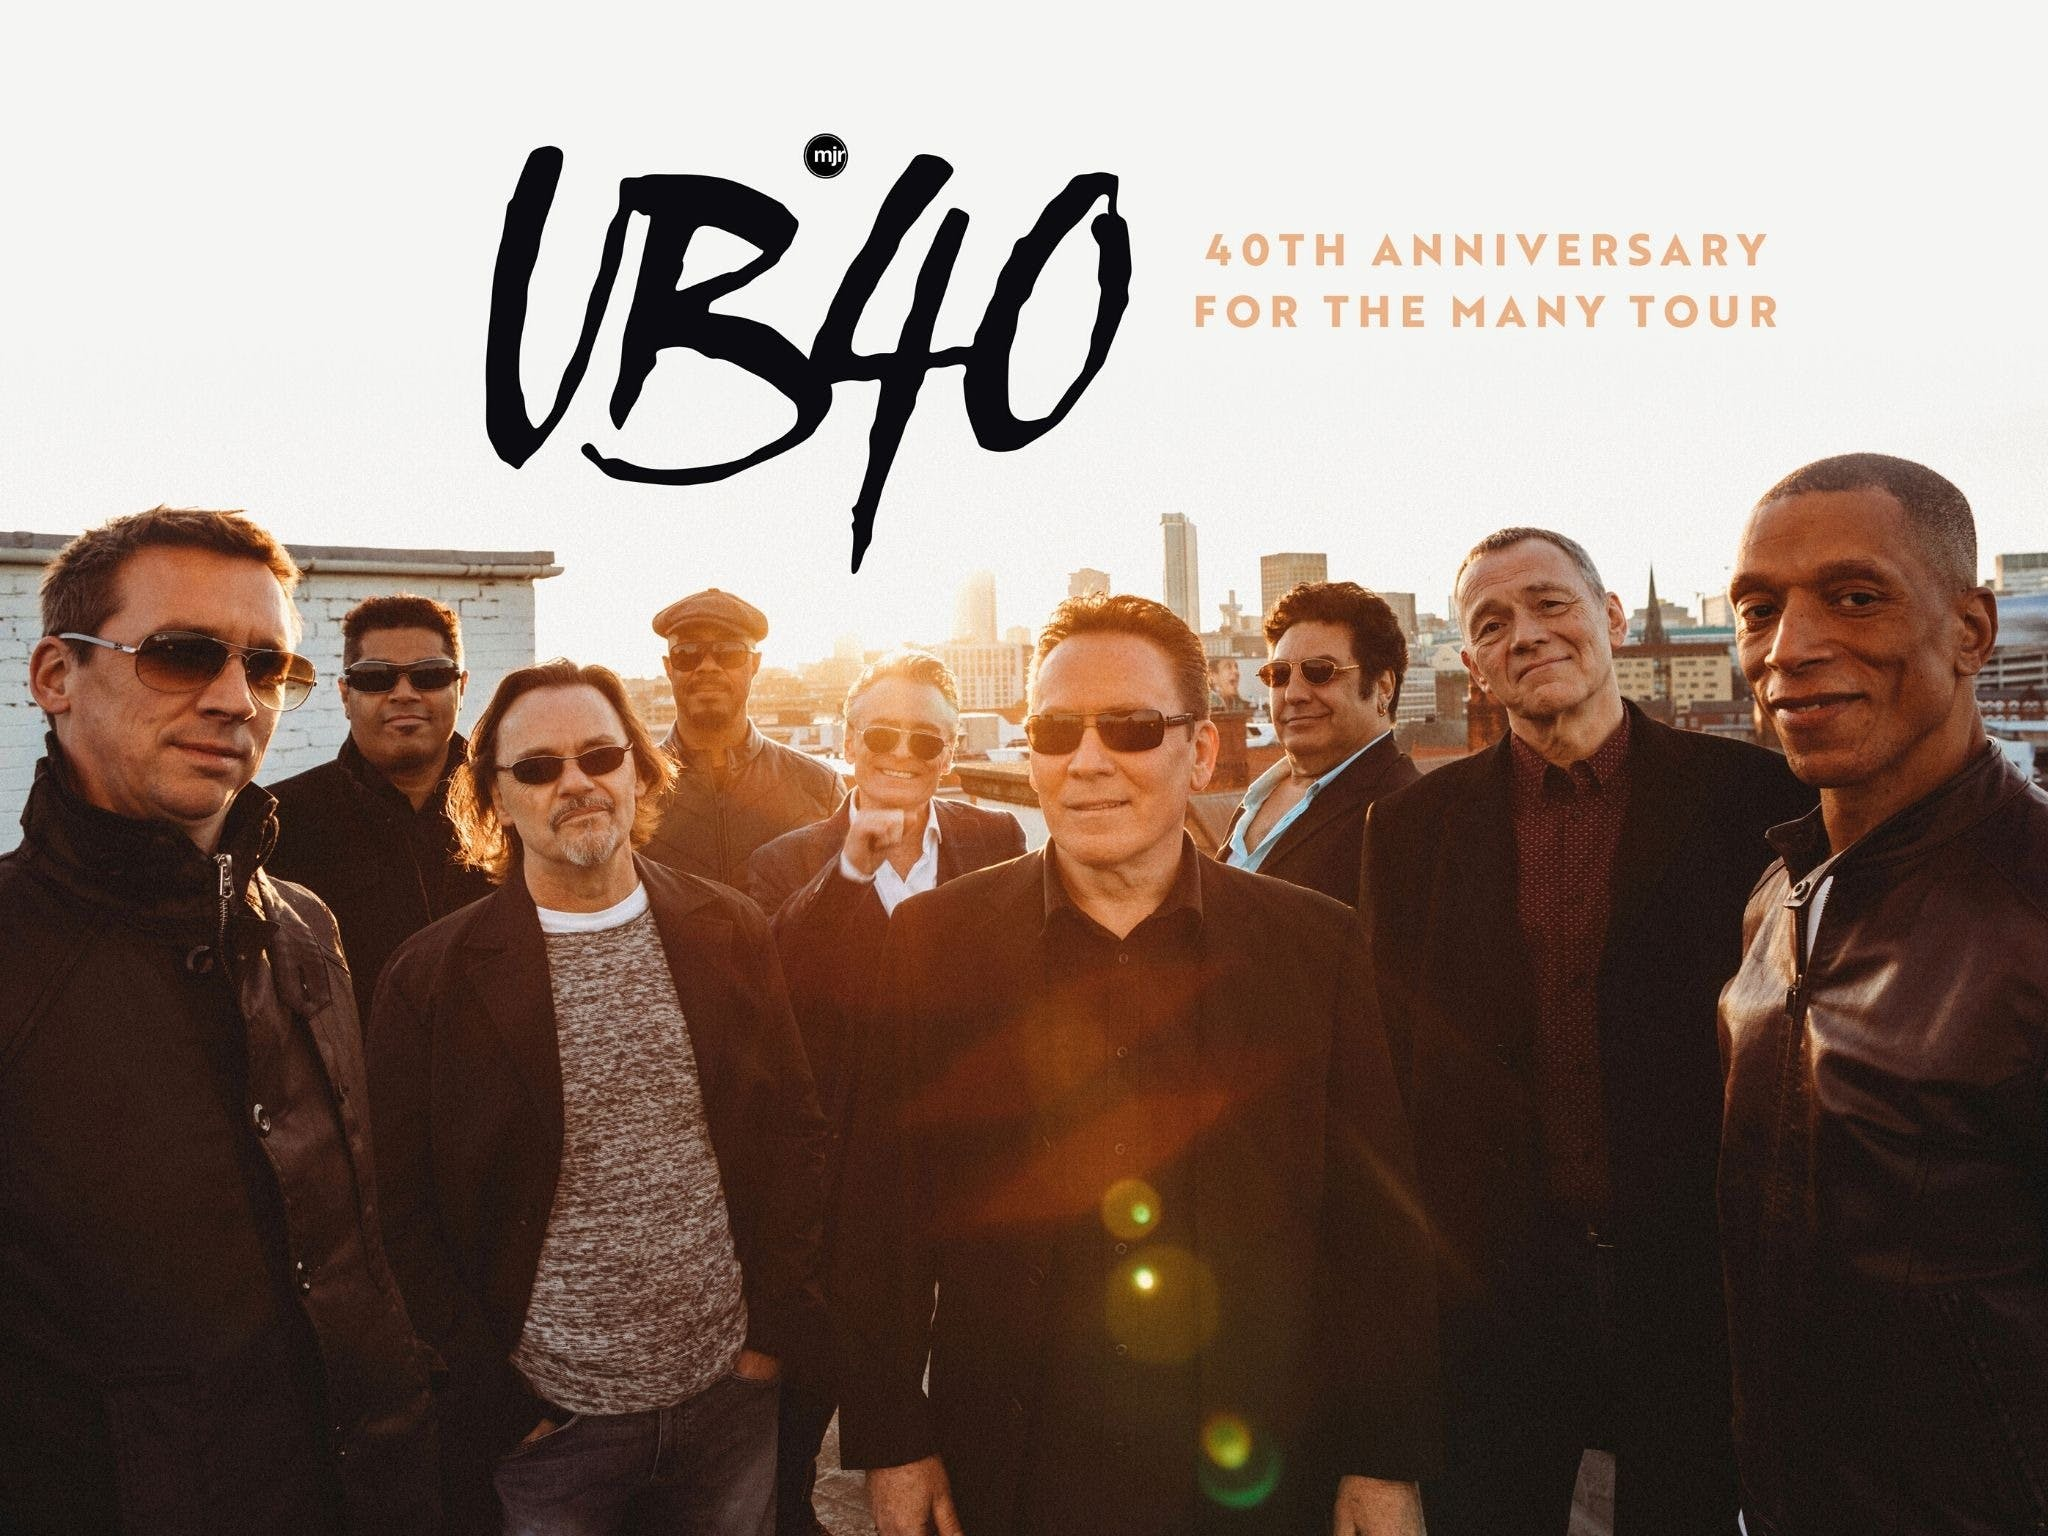 UB40 40th Anniversary Tour - Tourism Cairns